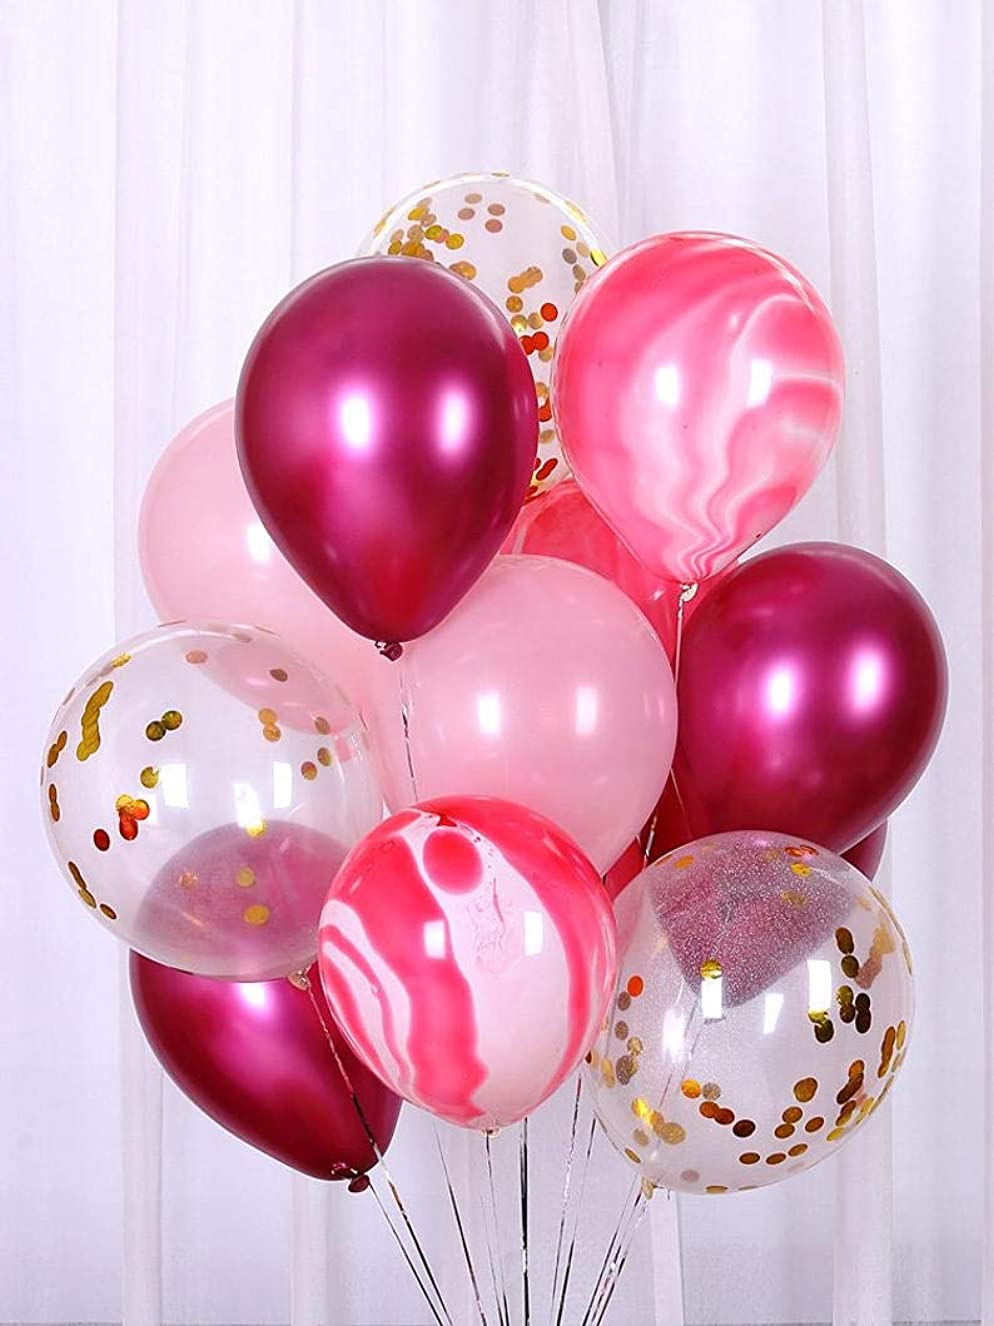 BALONAR 50pcs 12inch Pink Agate Latex Balloons Gold Pre-Filled Confetti Balloons and White Latex Balloons Burgundy Wine Red Latex Balloons Perfect for Happy Birthday Party Wedding Supplies Ceremony ykyhwjhzof3370